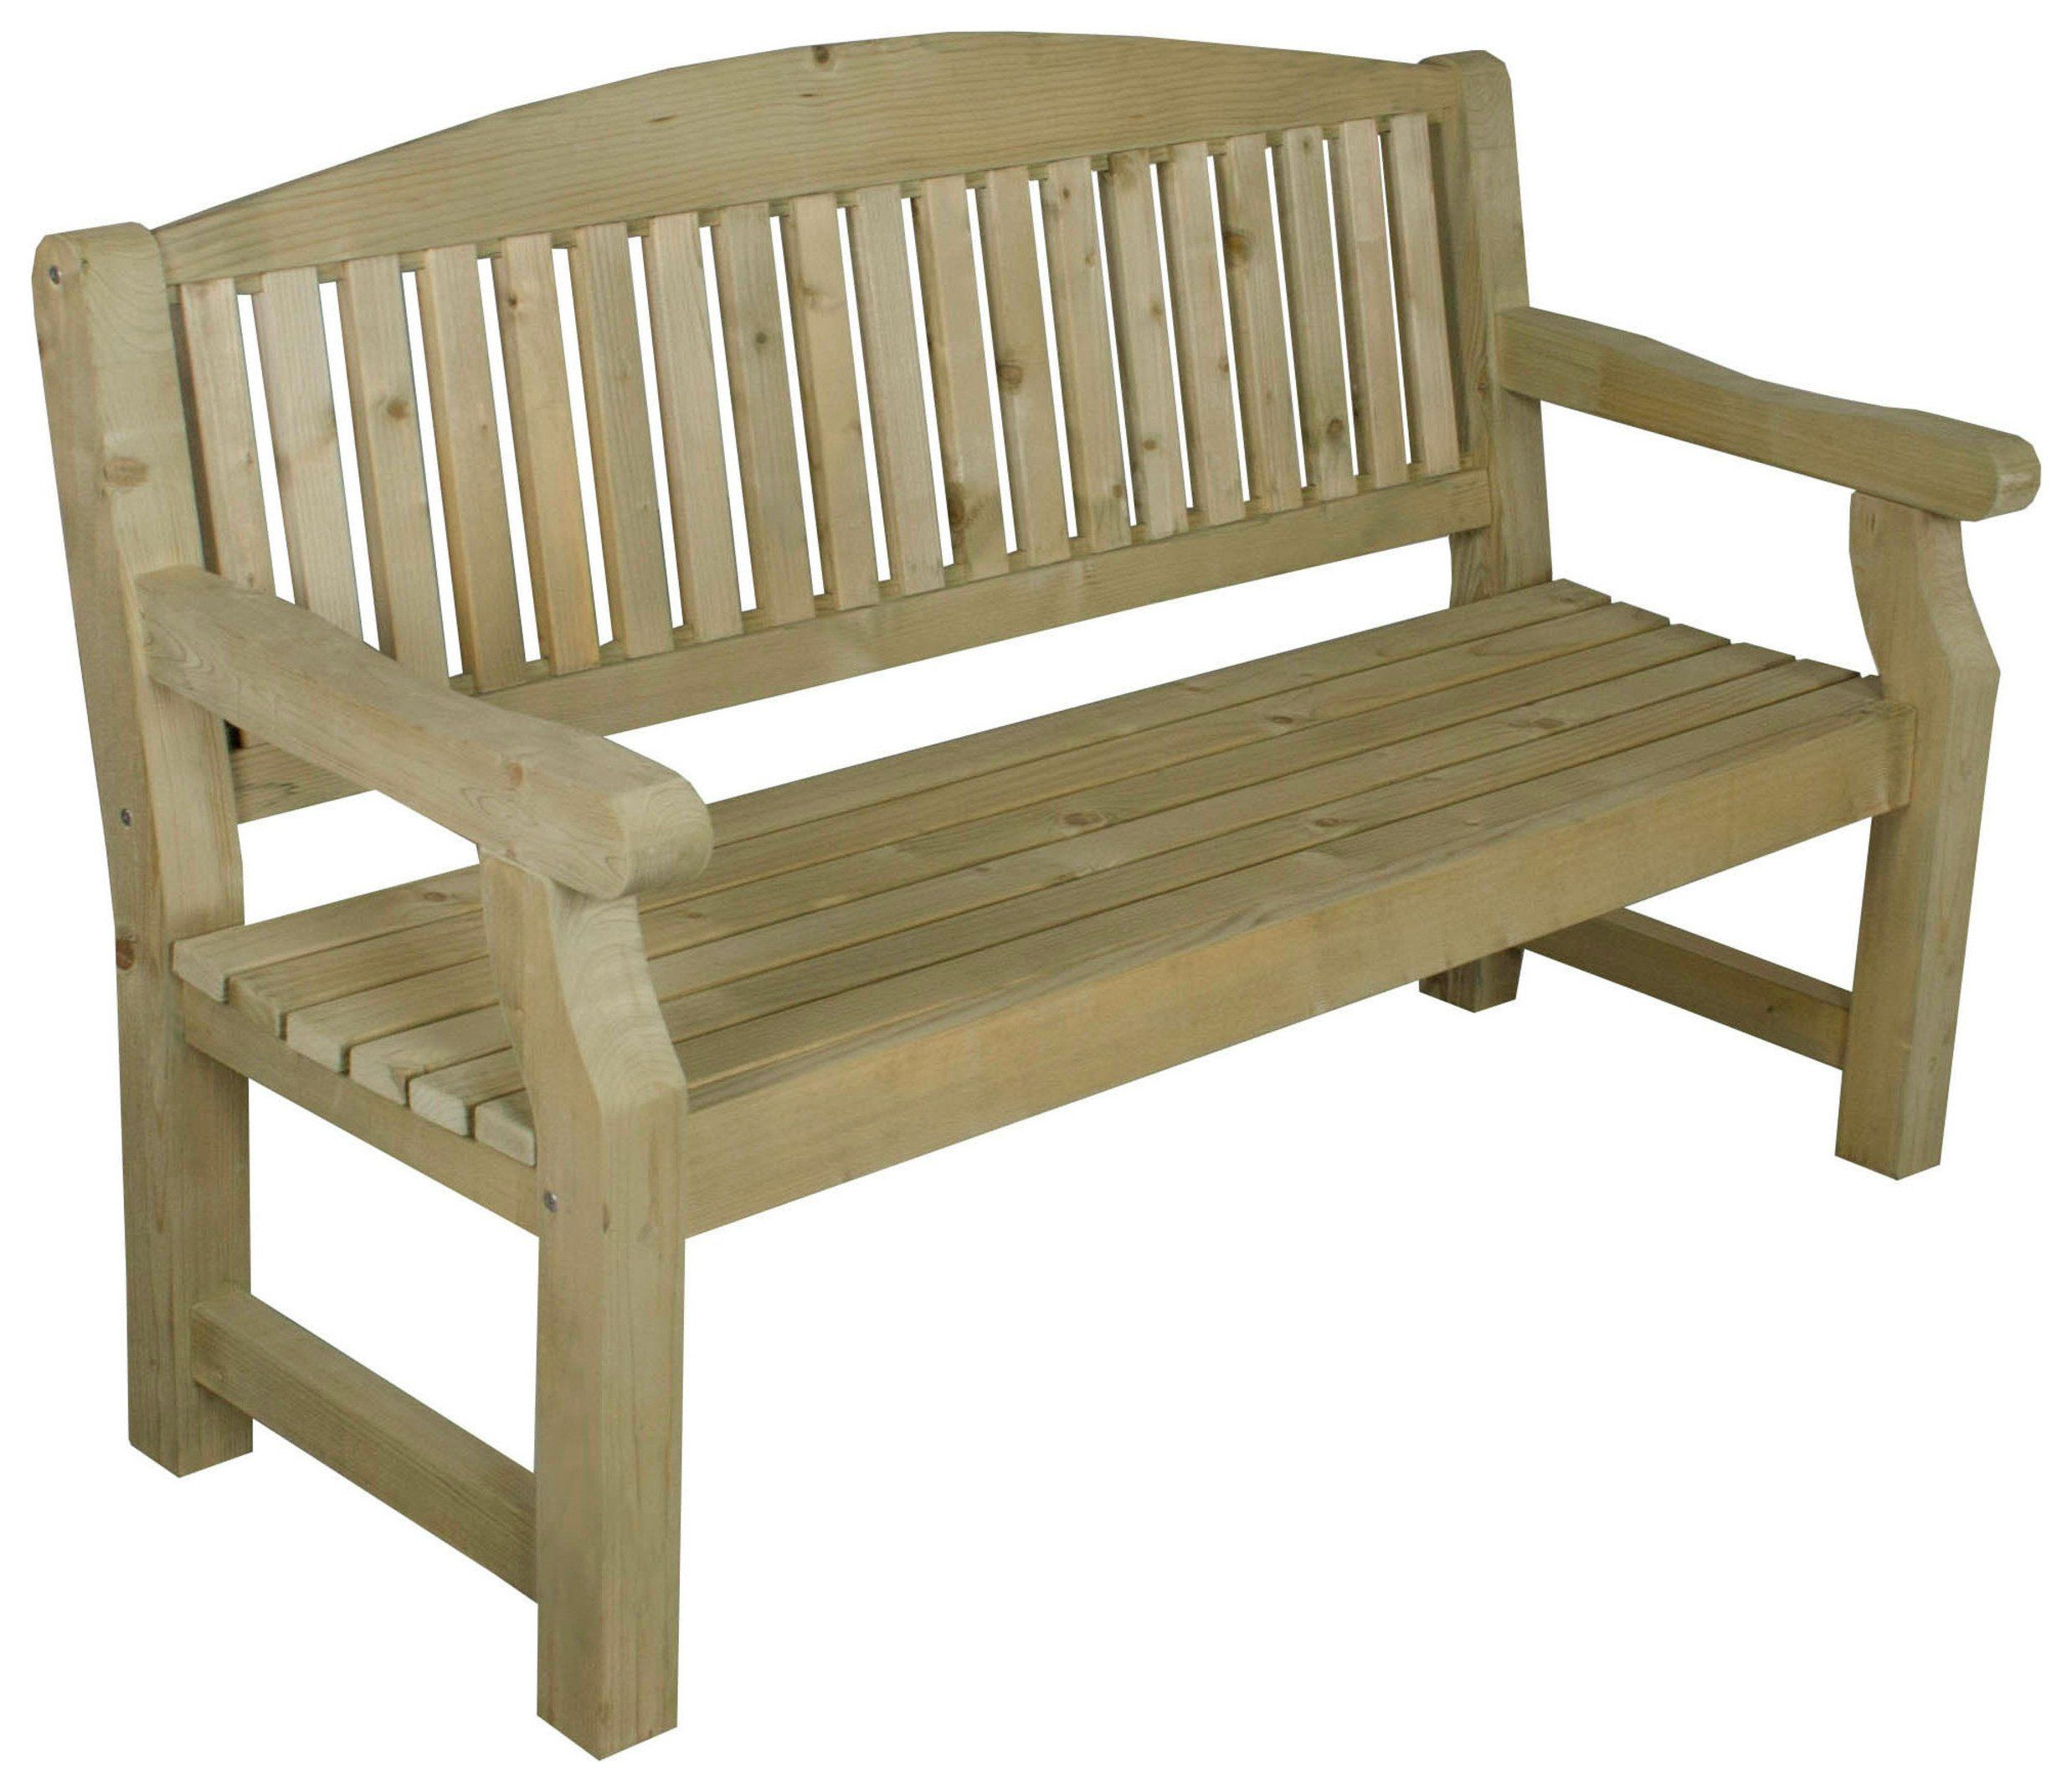 Argos Garden Table And Chairs Sale: Forest Harvington Wooden 3 Seater Garden Bench In 2020